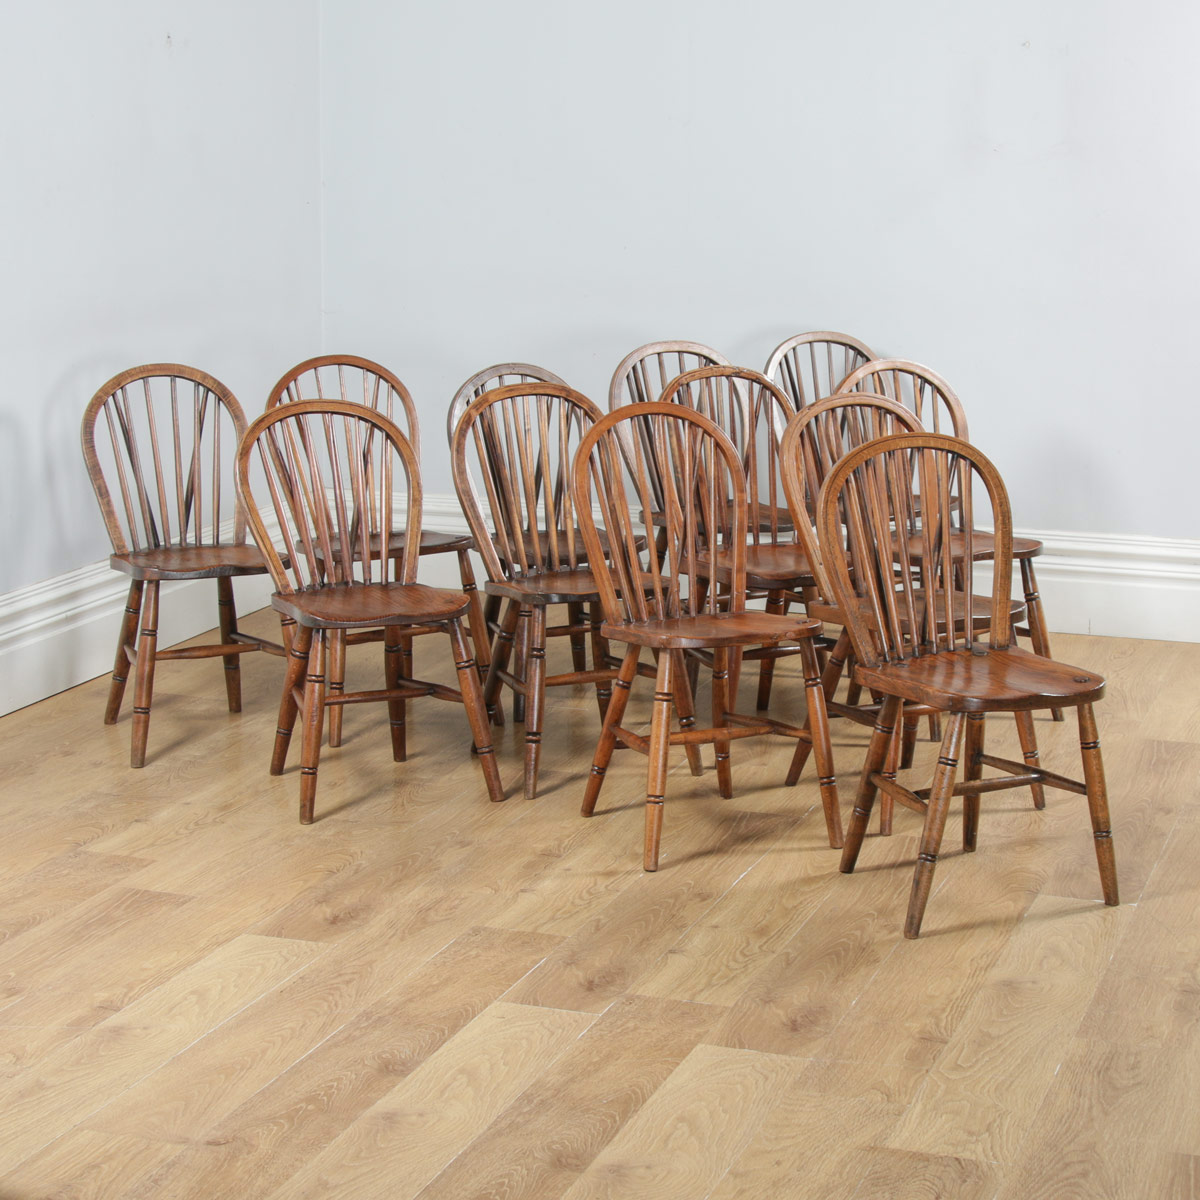 Kitchen Chairs Wood Antique Set Of 12 Victorian Ash Elm Windsor Stick Hoop Back Kitchen Chairs Circa 1900